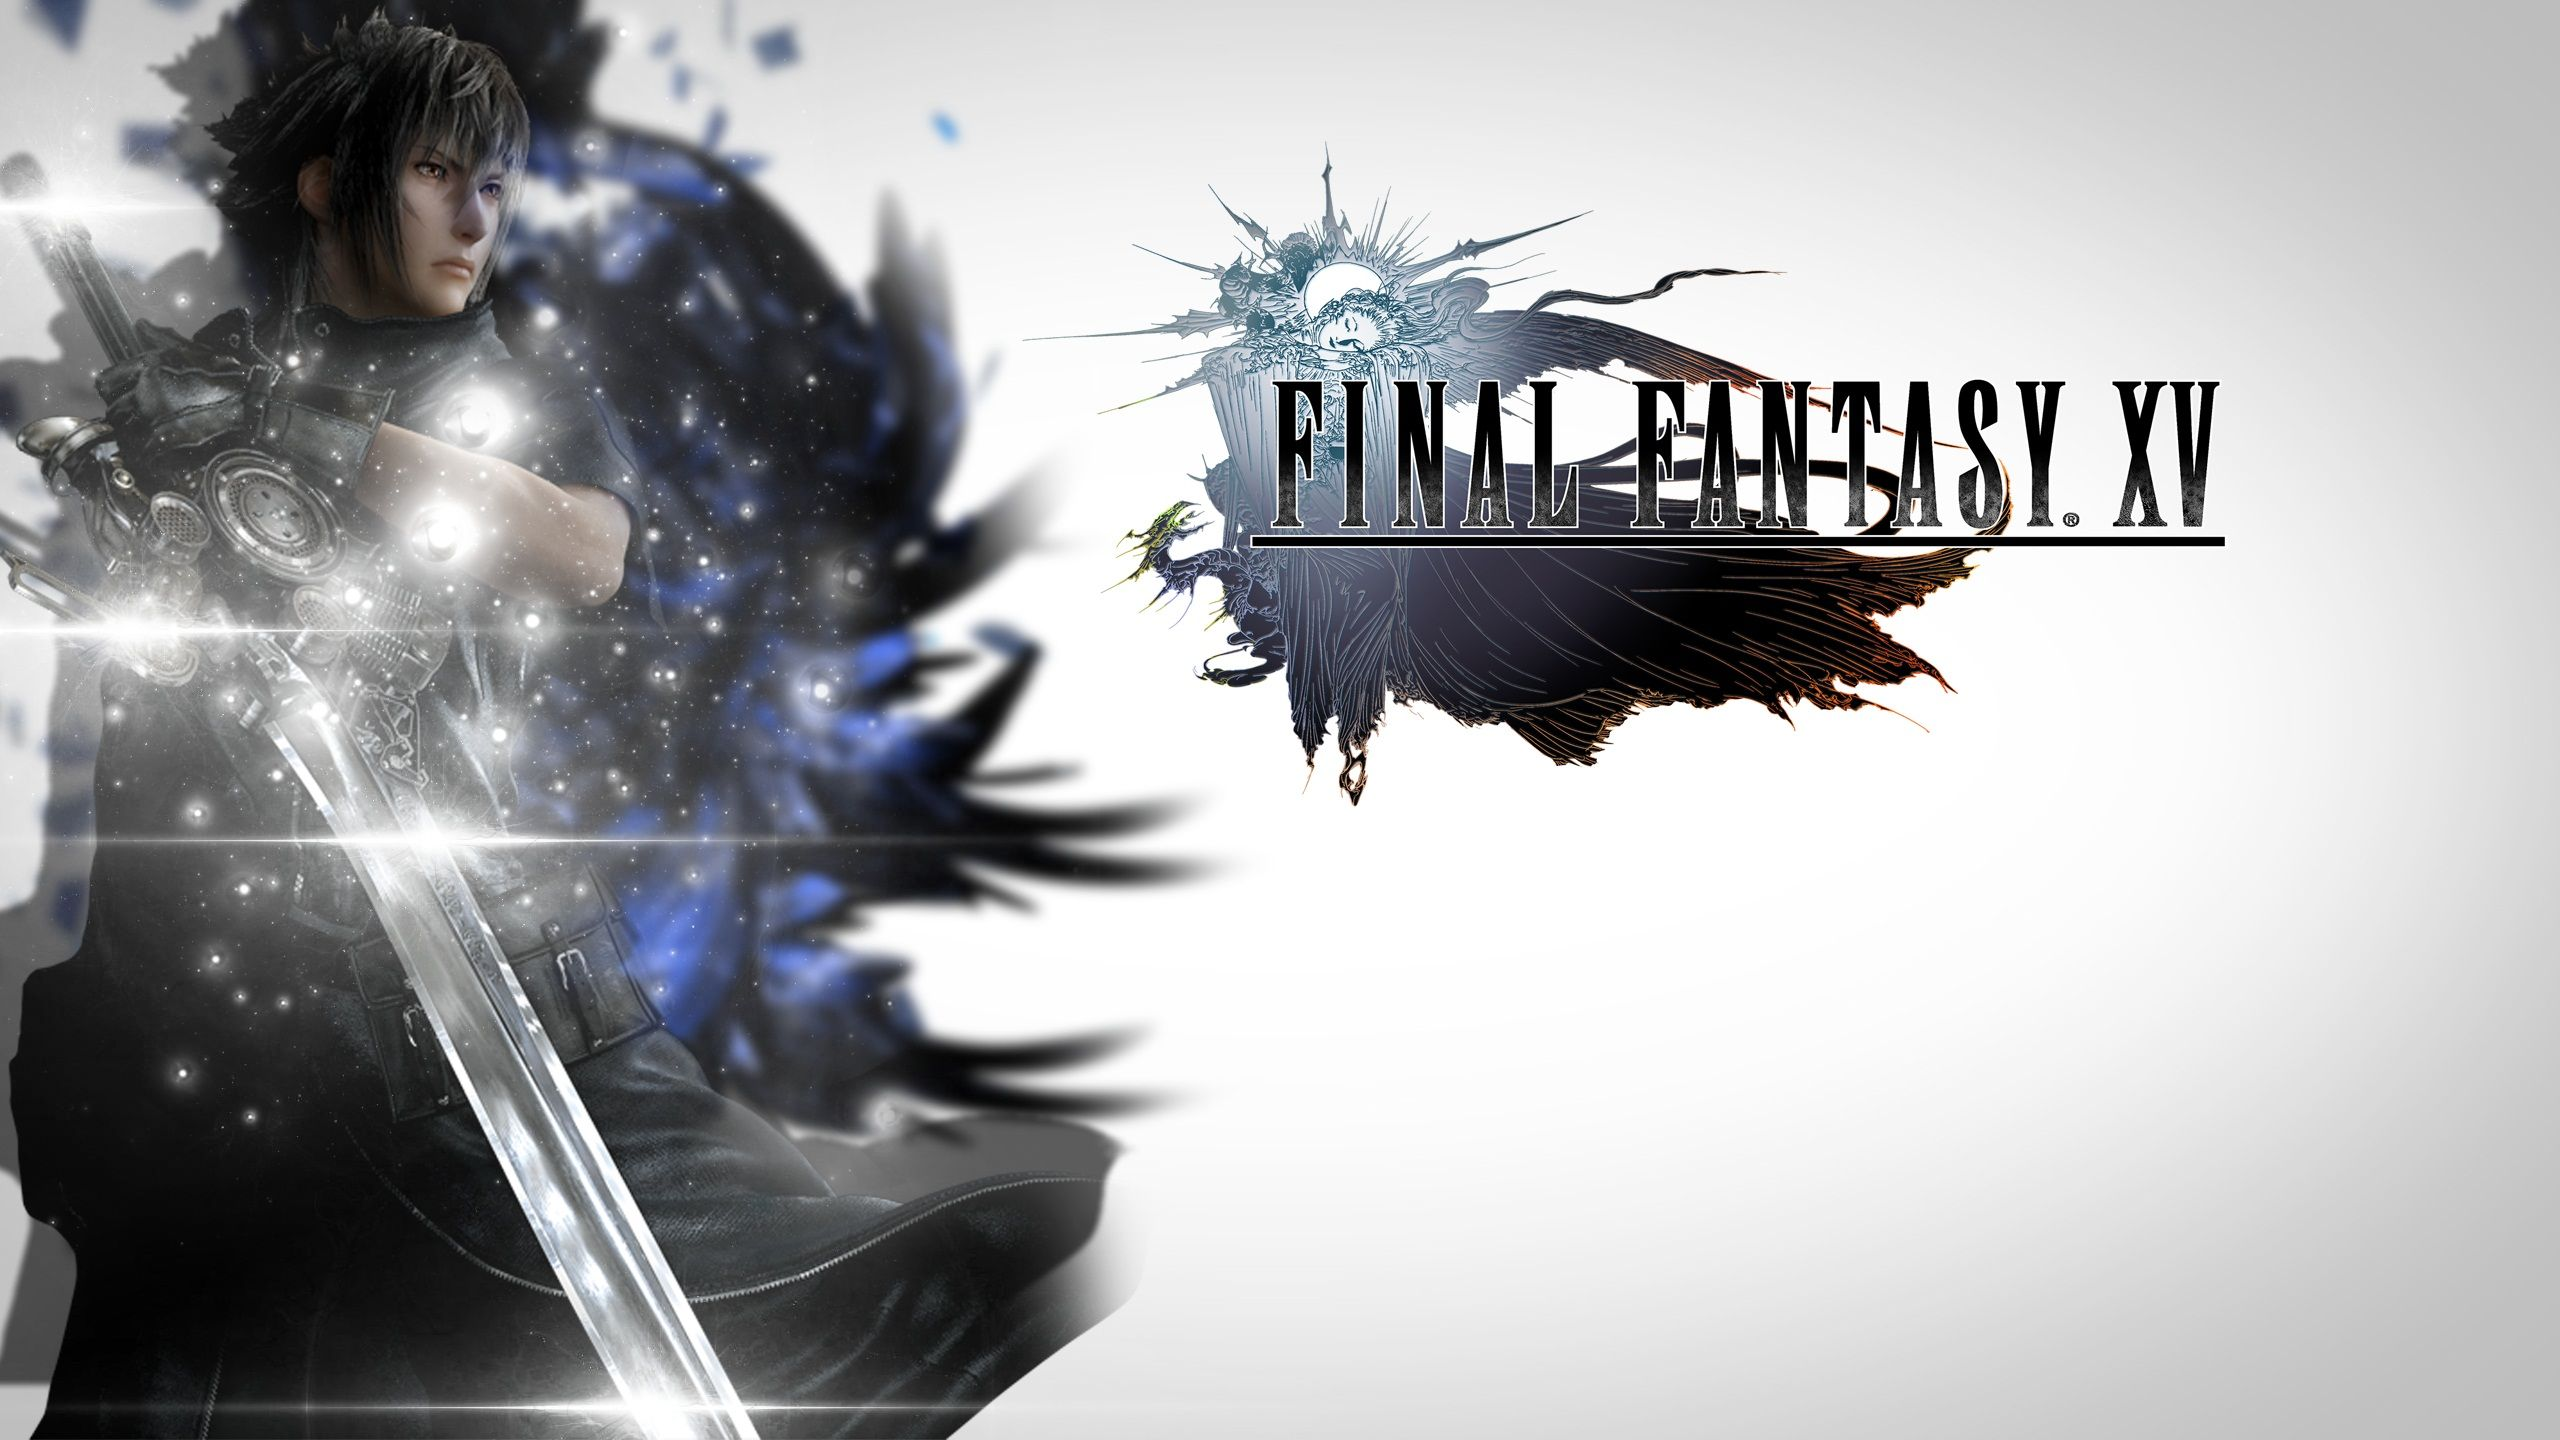 Final Fantasy Xv Wallpapers Top Free Final Fantasy Xv